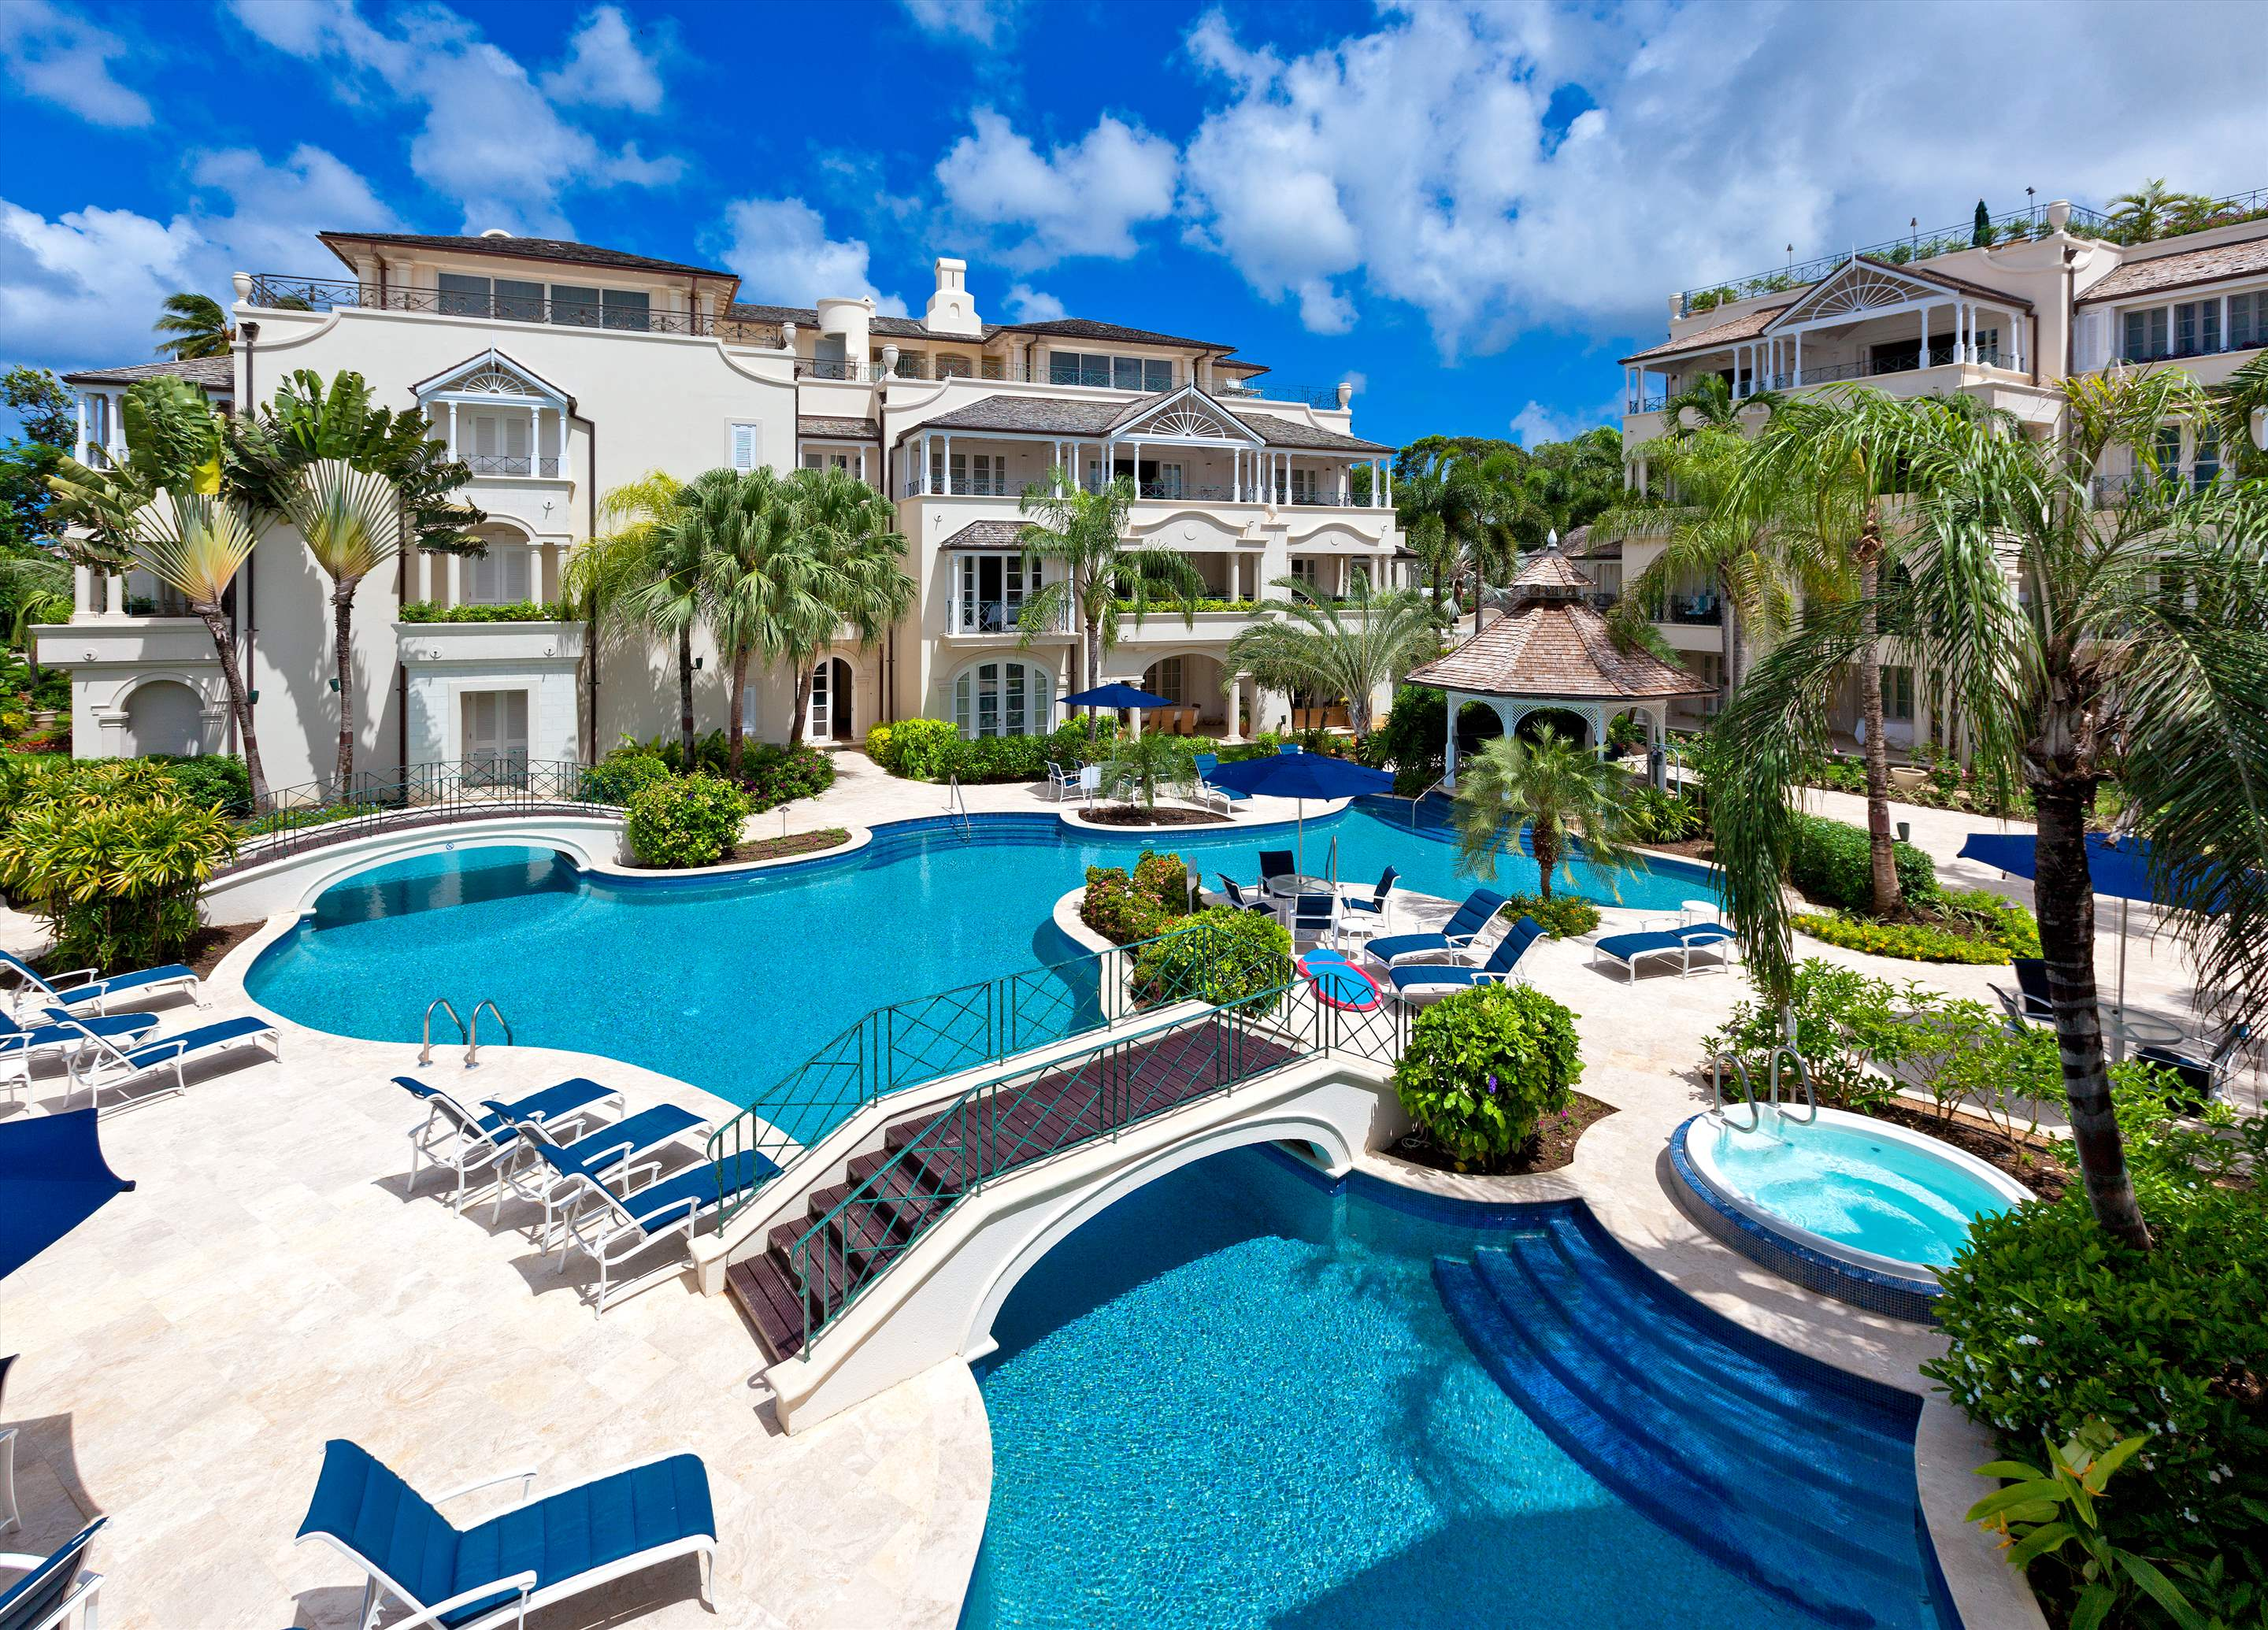 Schooner Bay 207, Two Bedroom Rate, 2 bedroom apartment in St. James & West Coast, Barbados Photo #1